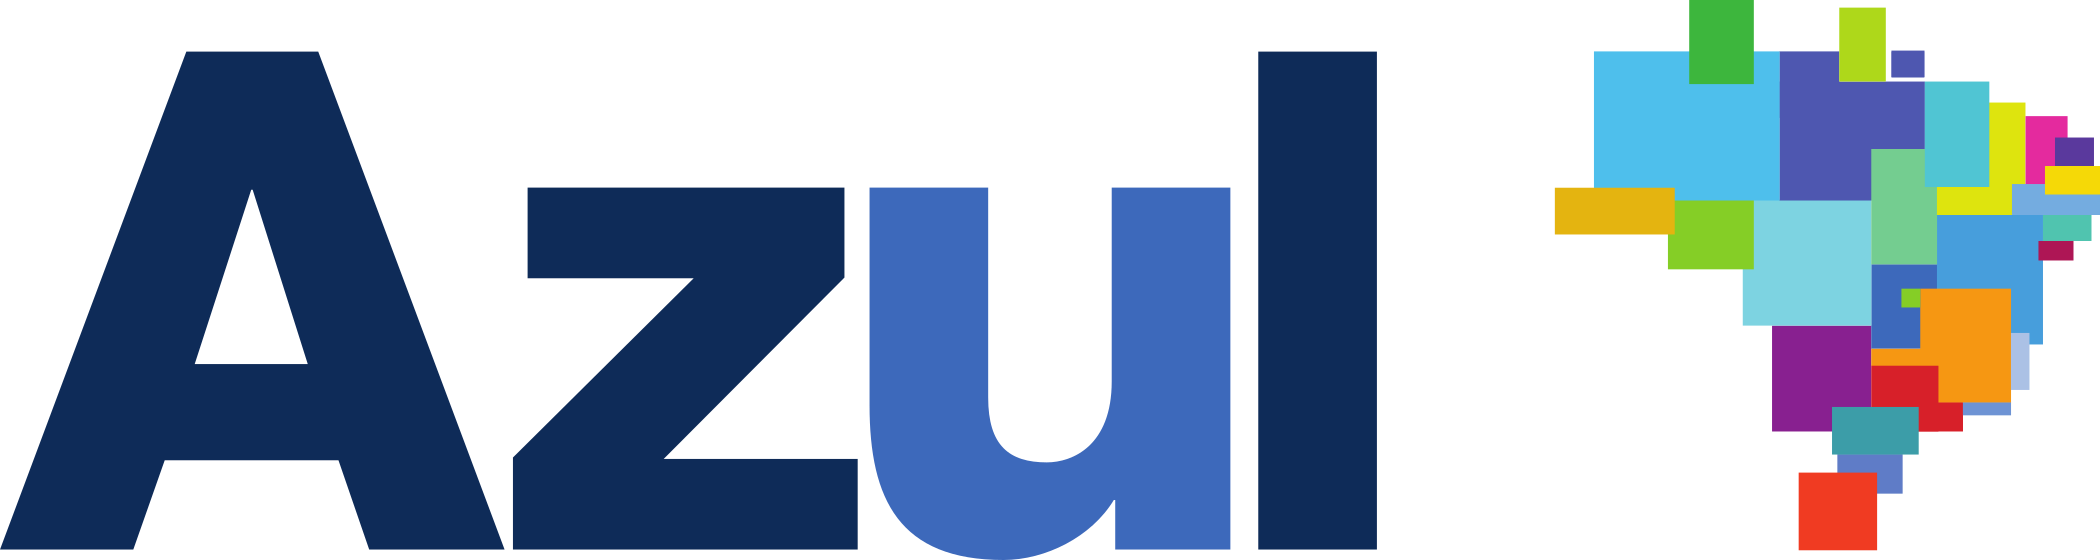 azul-airlines-logo-01